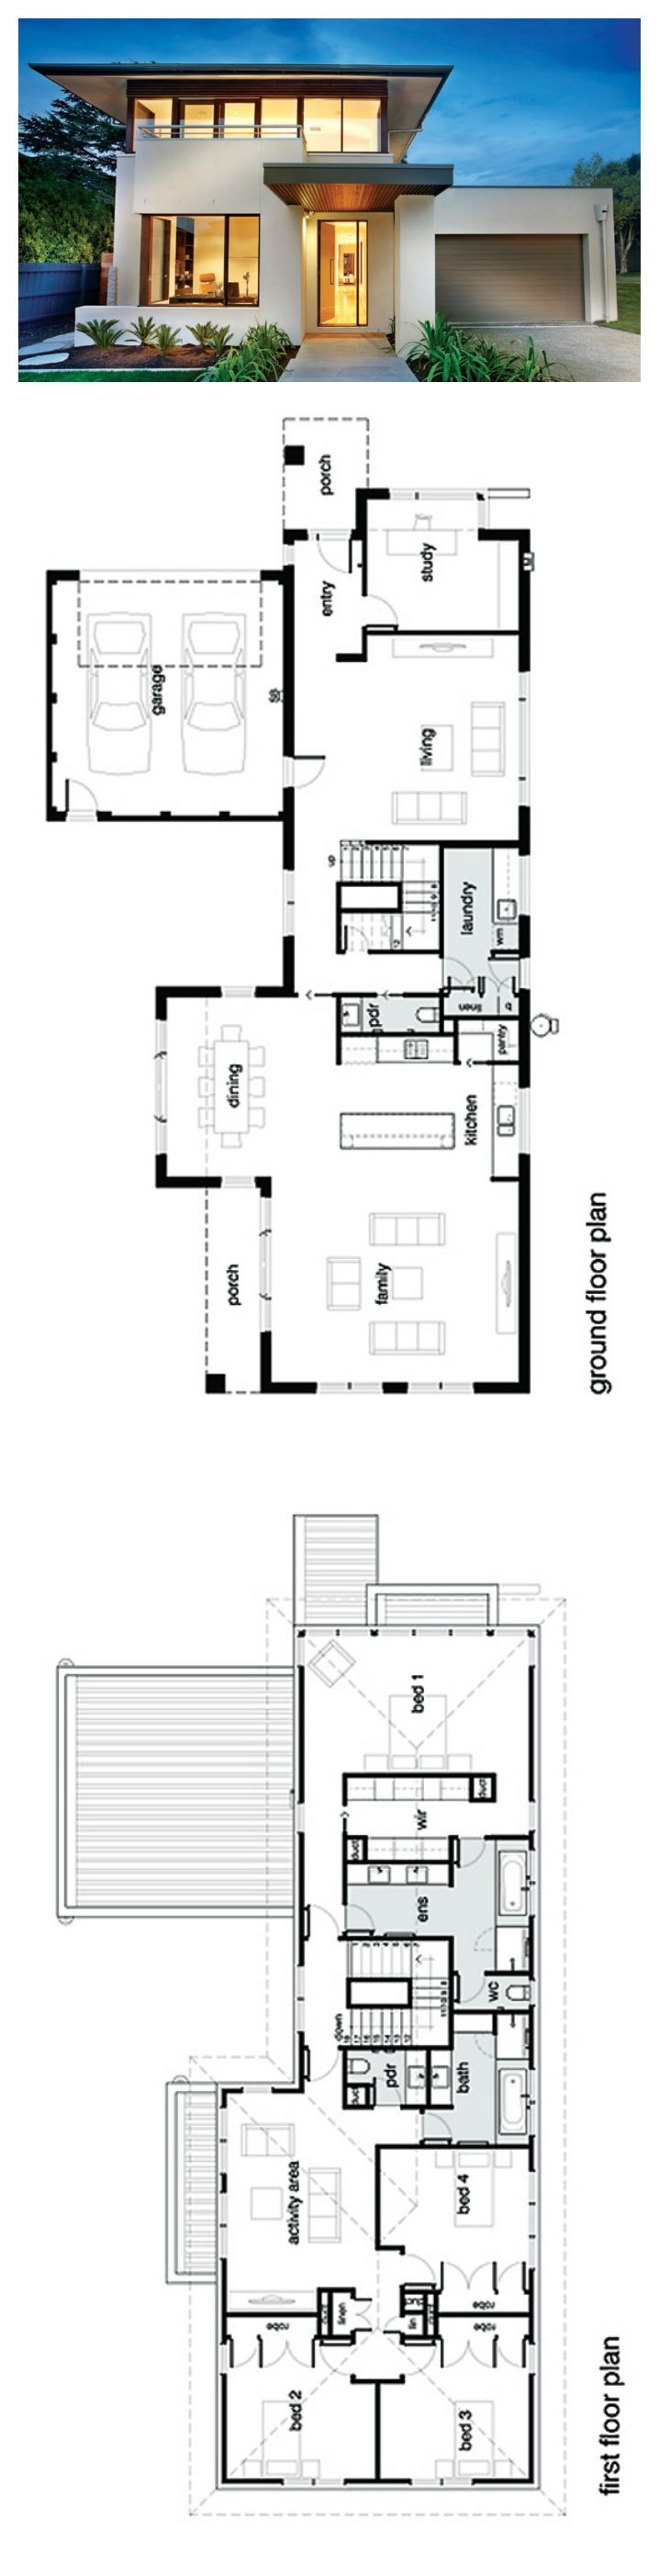 Best 25 modern house plans ideas on pinterest for New house design